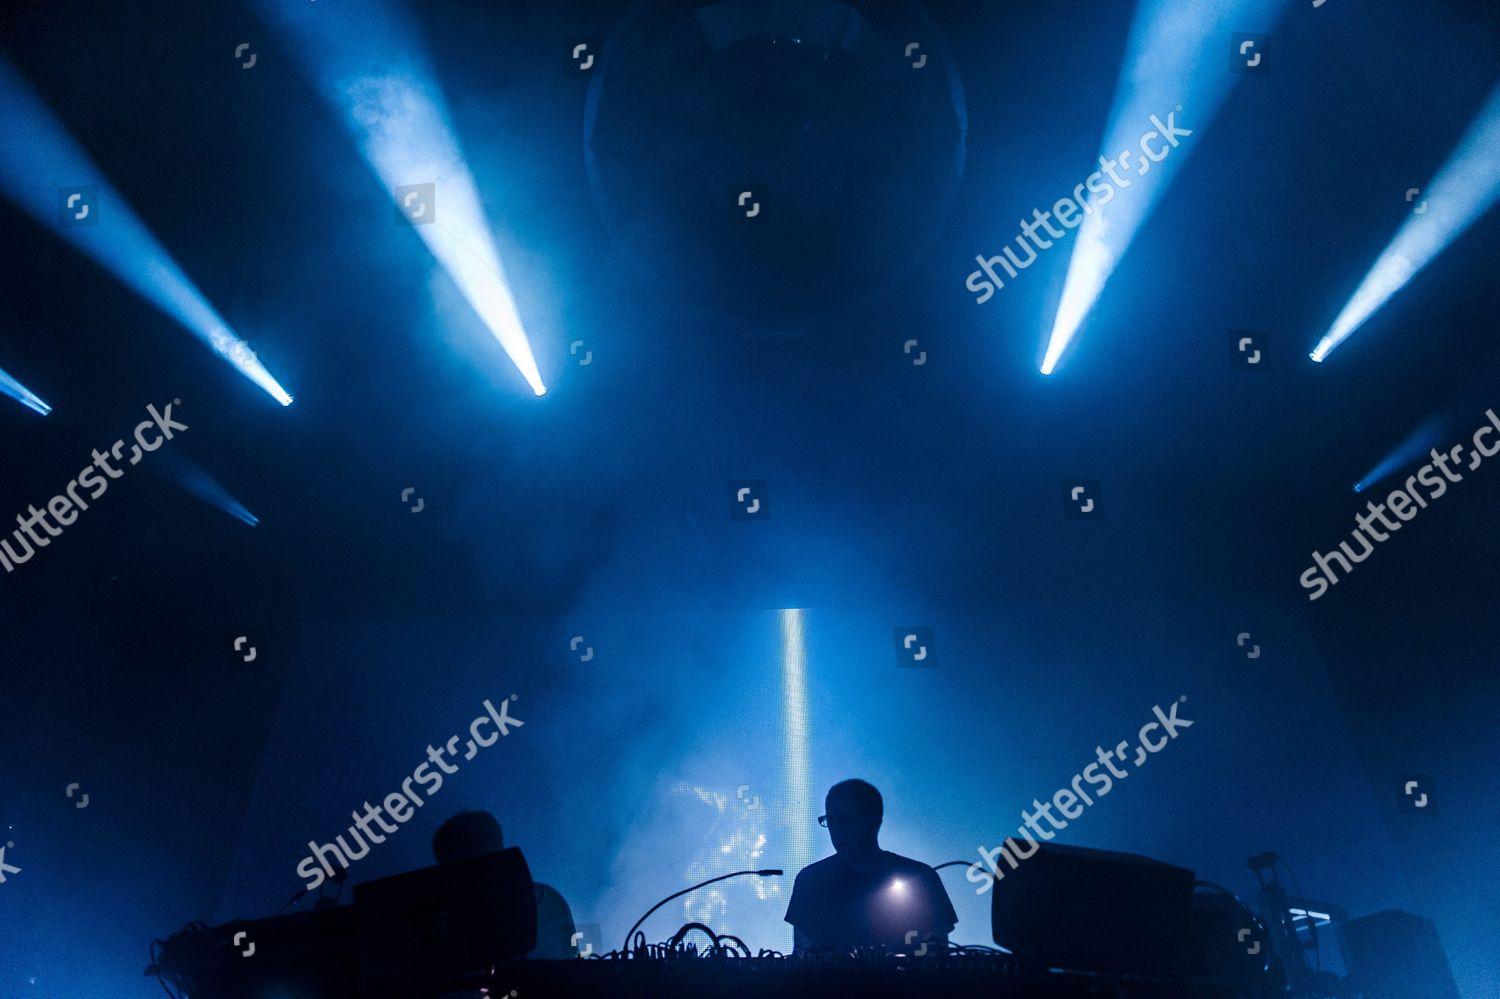 Montreux Jazz Festival 2015 >> British Electronic Dance Music Duo Chemical Brothers Editorial Stock